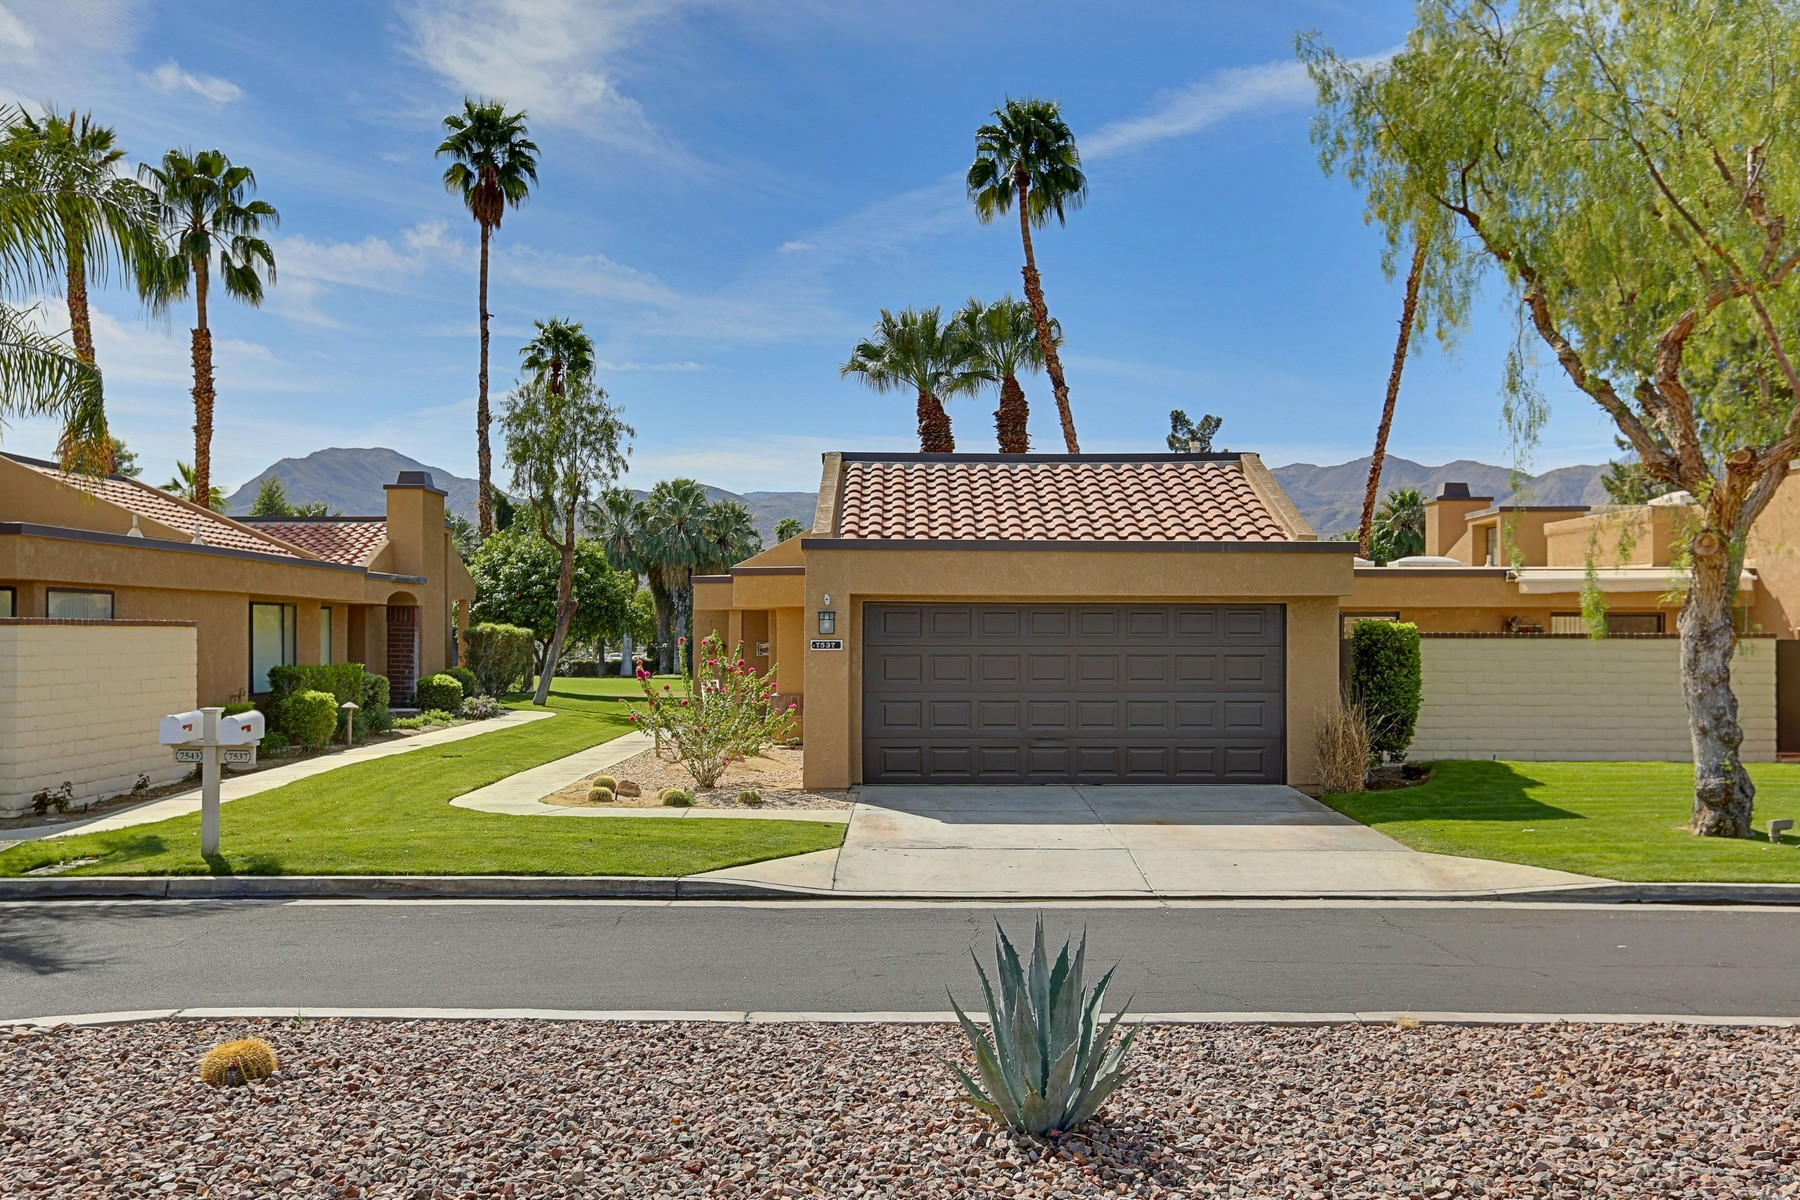 Single Family Home for Sale at 7549 Regency Drive Palm Springs, California, 92264 United States